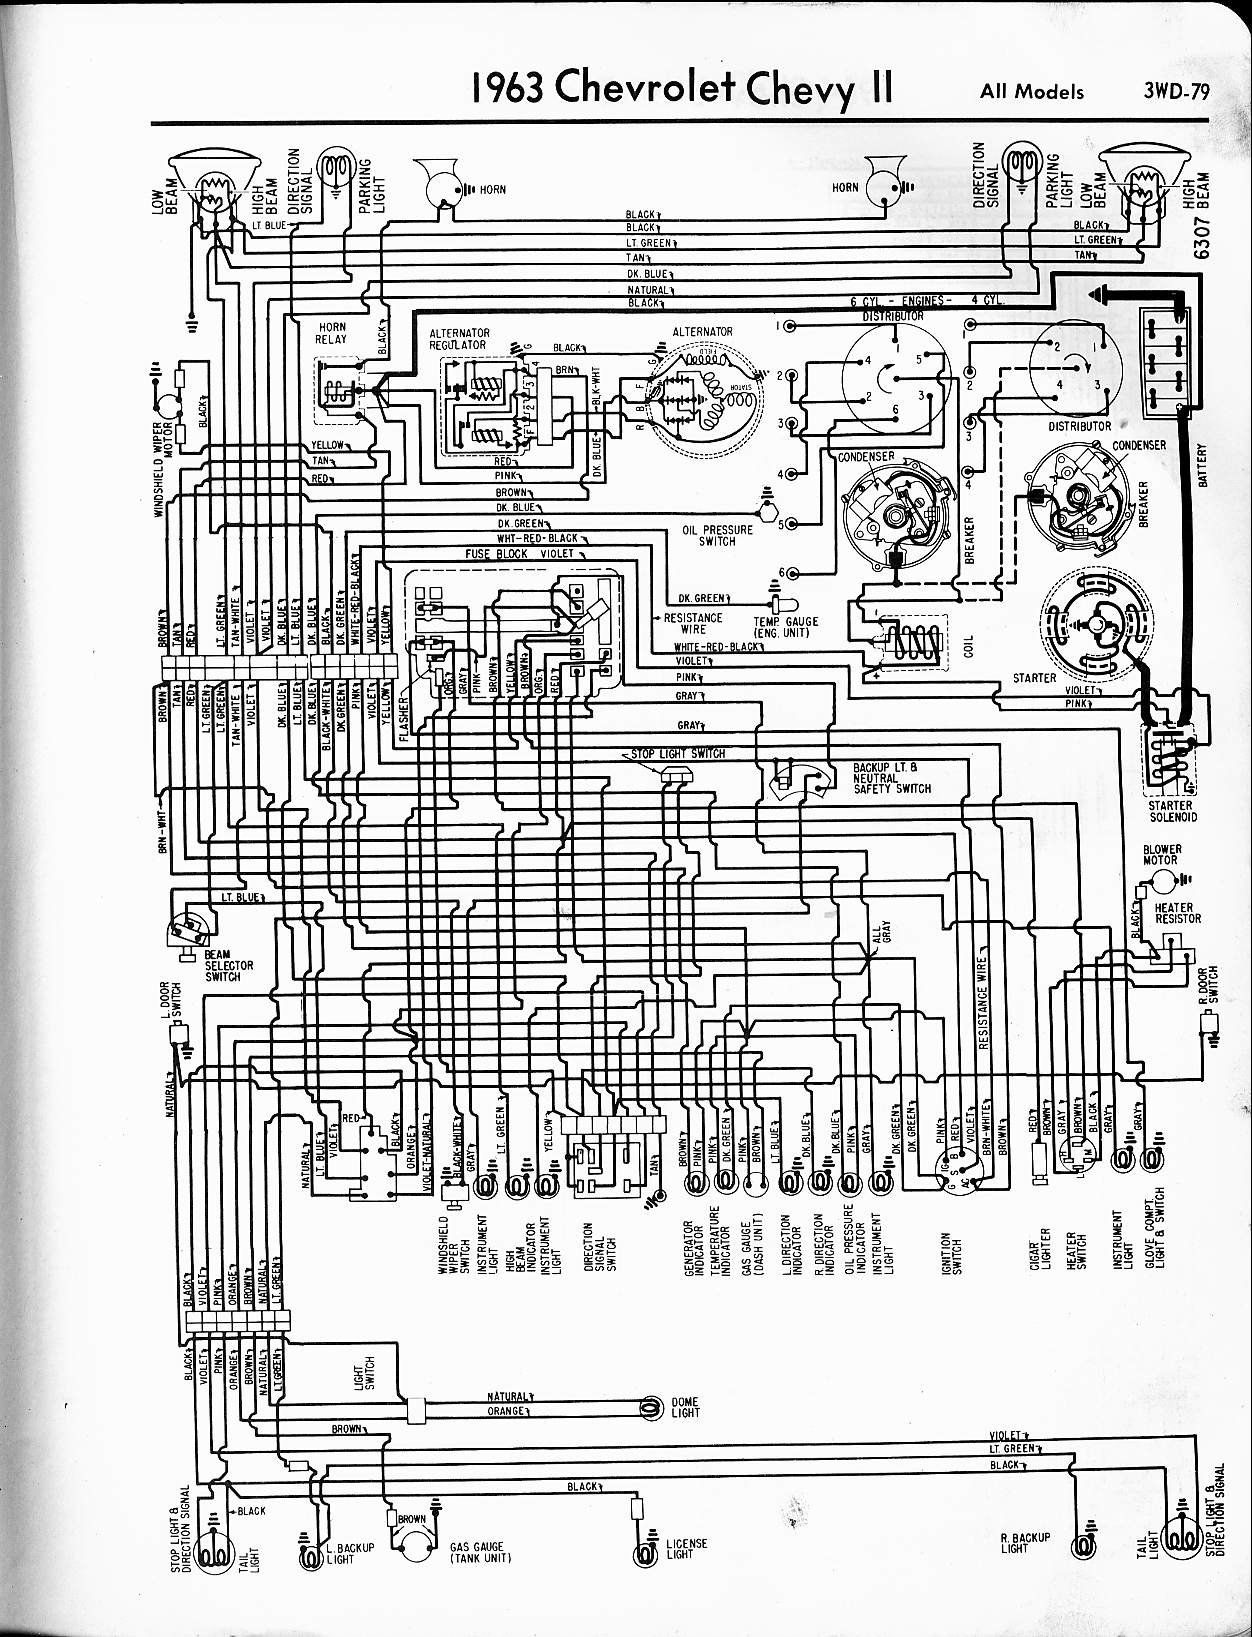 MWireChev63_3WD 079?resize\\\\\\\=665%2C869 1965 chevrolet impala ignition wiring 1965 chevrolet truck 1965 c10 wiring diagram at mifinder.co